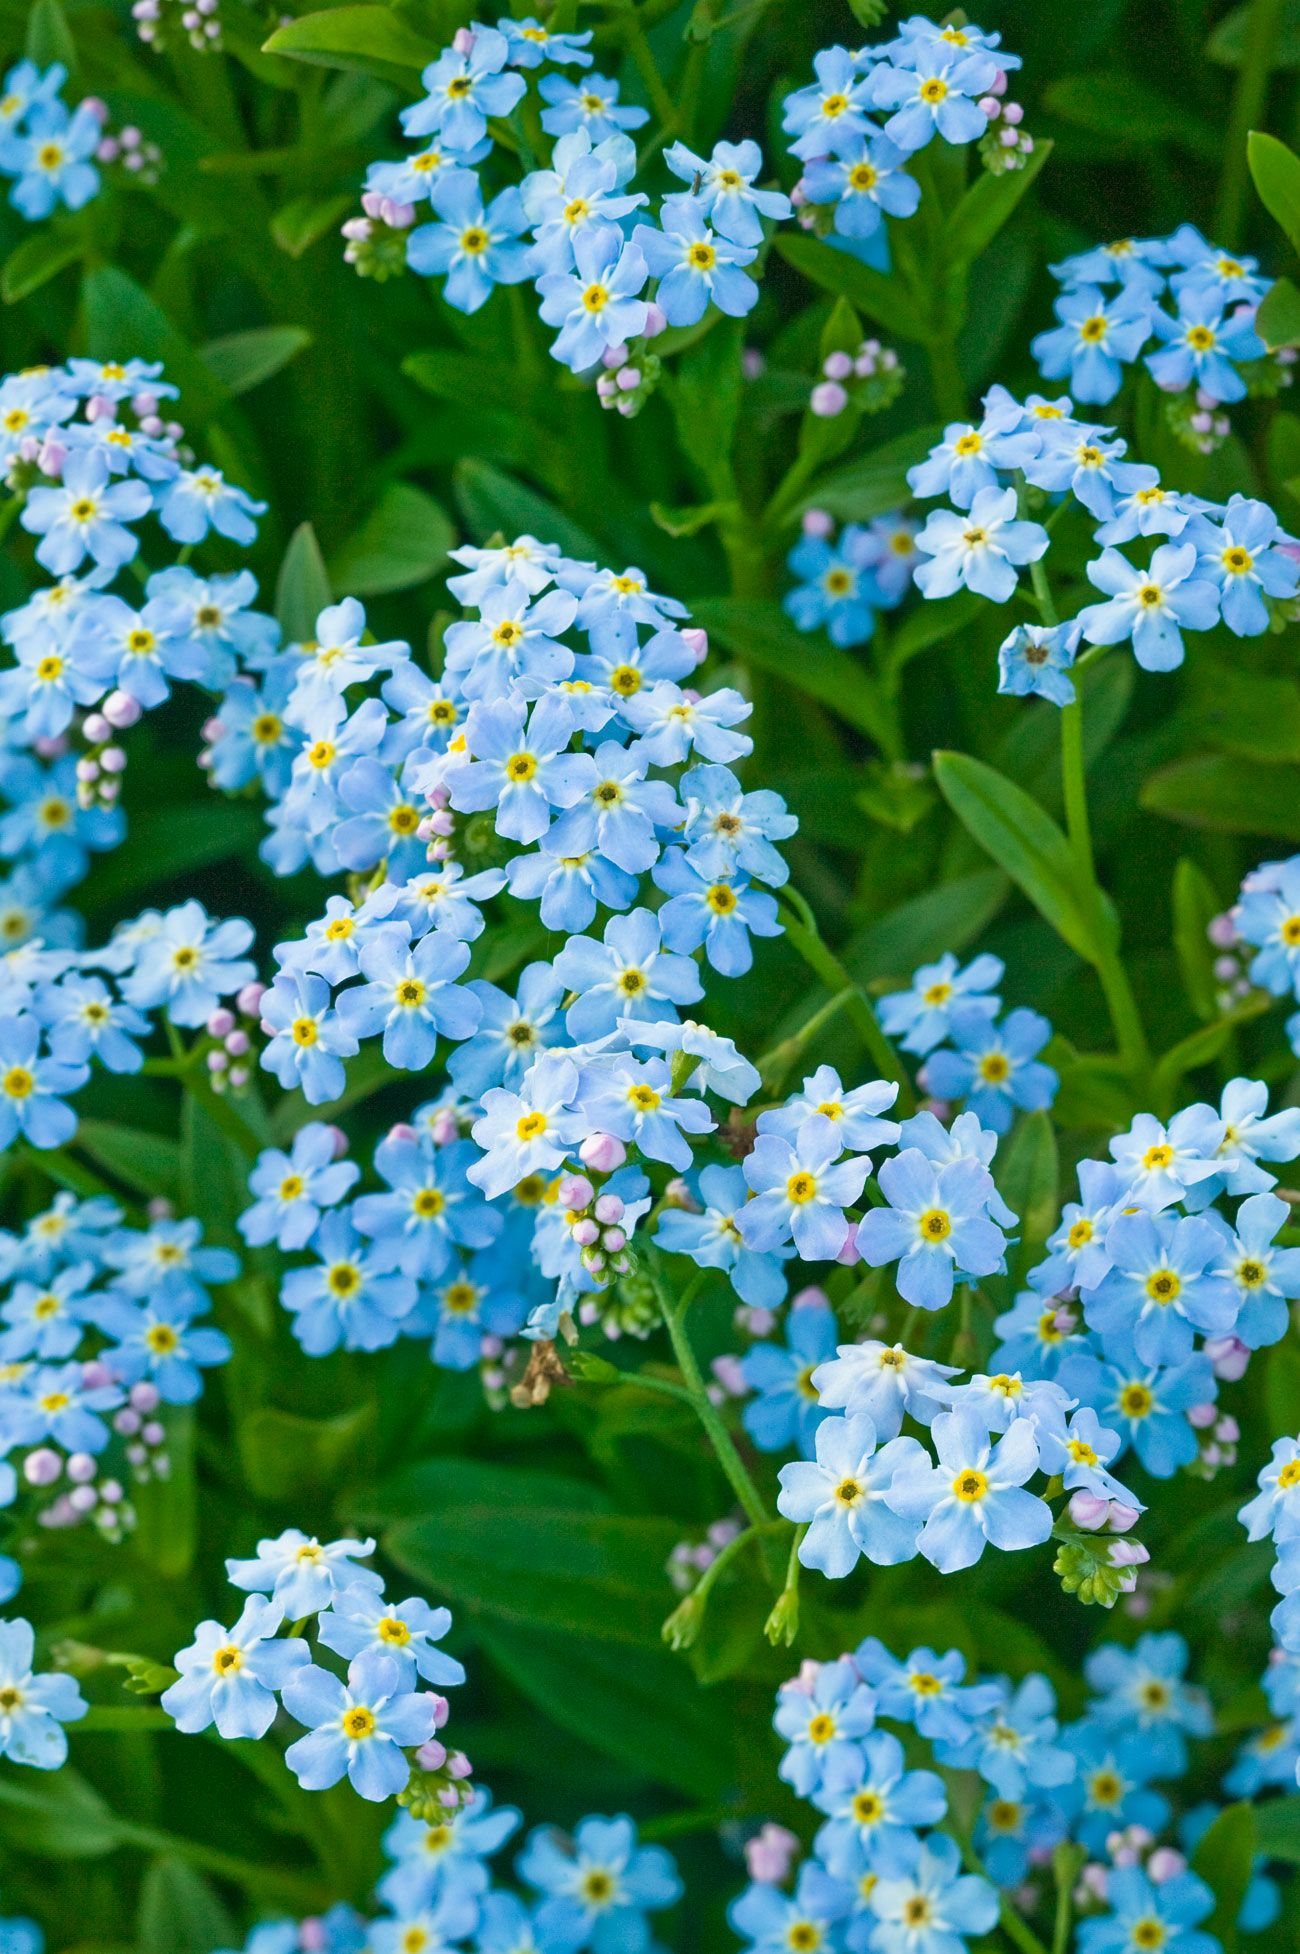 Outdoor flowers that like sun - 50 Flowers You Should Have In Your Garden